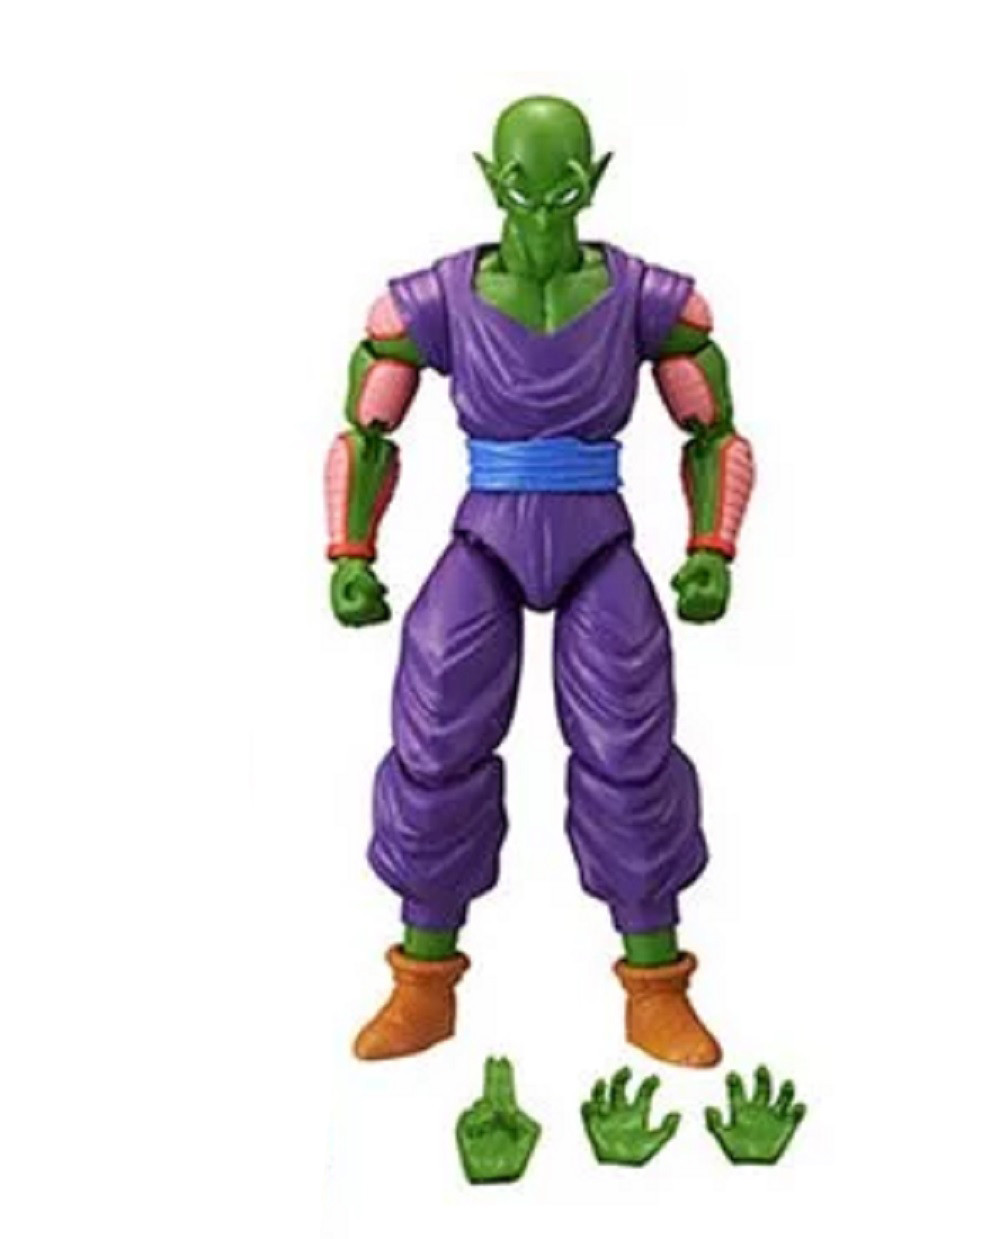 Action Figure Toy - Dragon Ball Stars - Piccolo - Wave 9 - 7 Inch